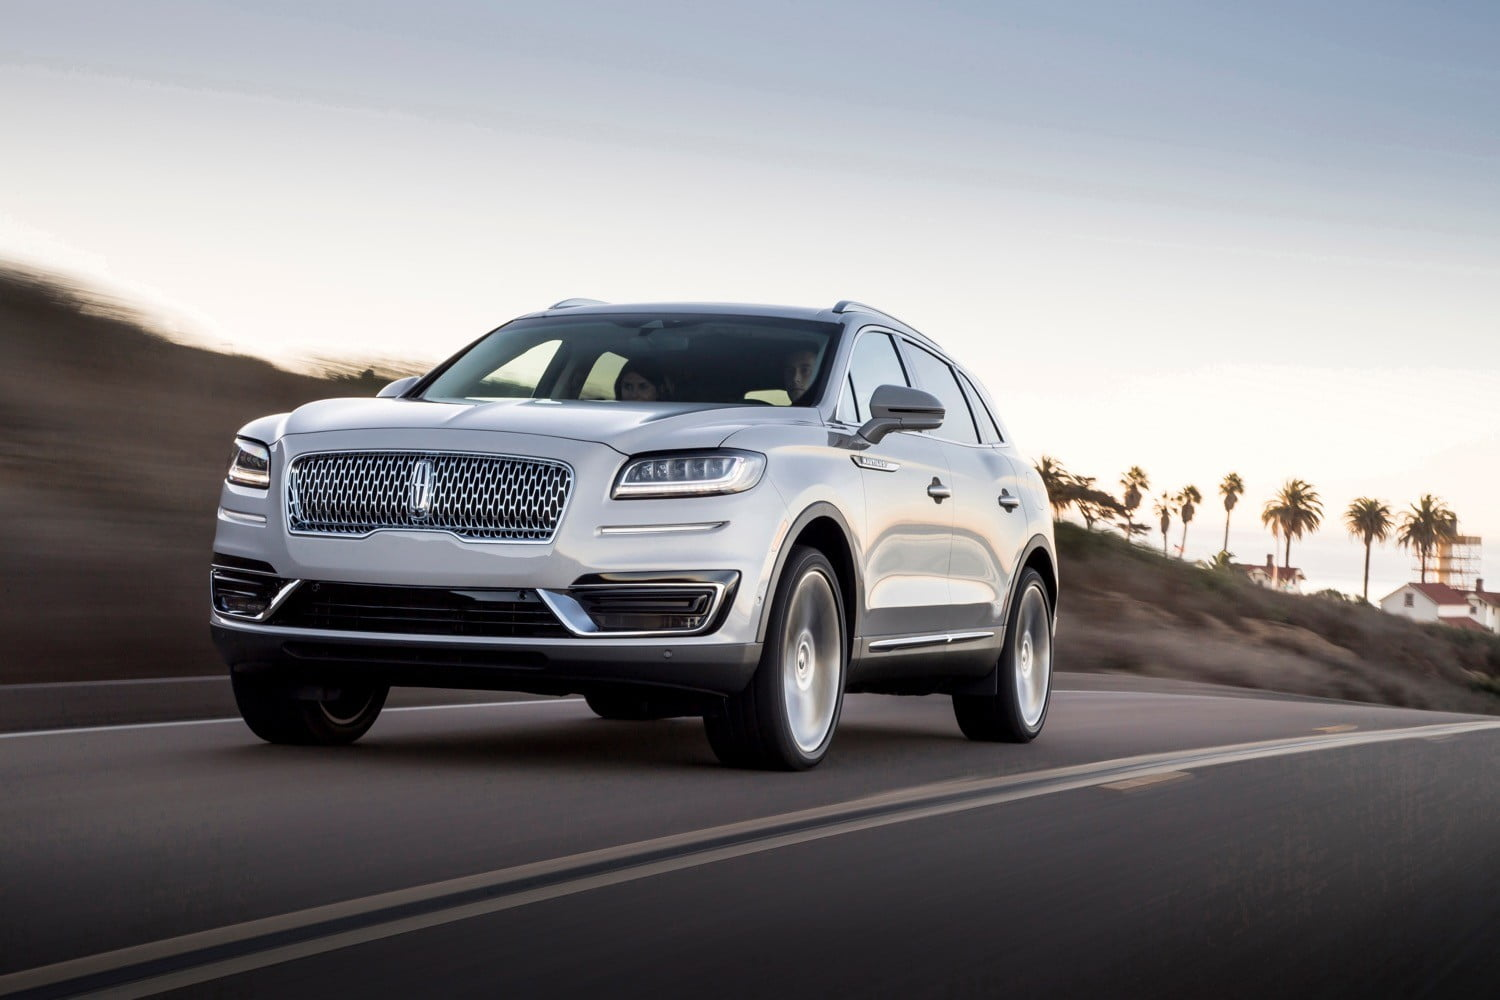 2019 Lincoln Nautilus Official Photos Details And Specs